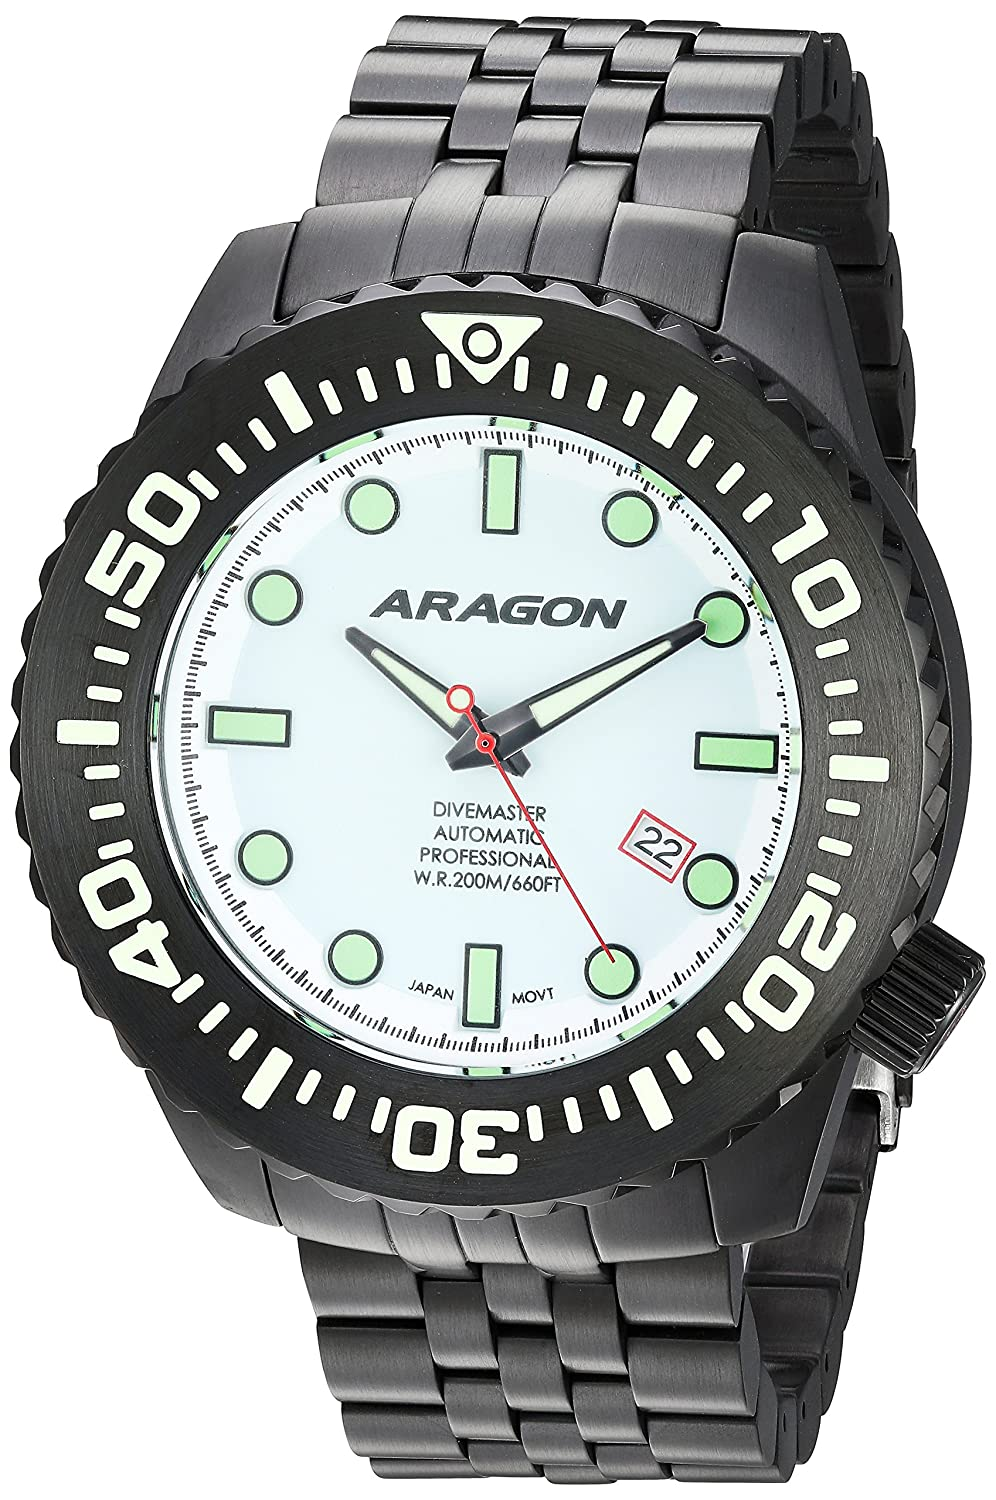 Image of Sport Watches ARAGON A253WHT Divemaster EVO 50mm Automatic